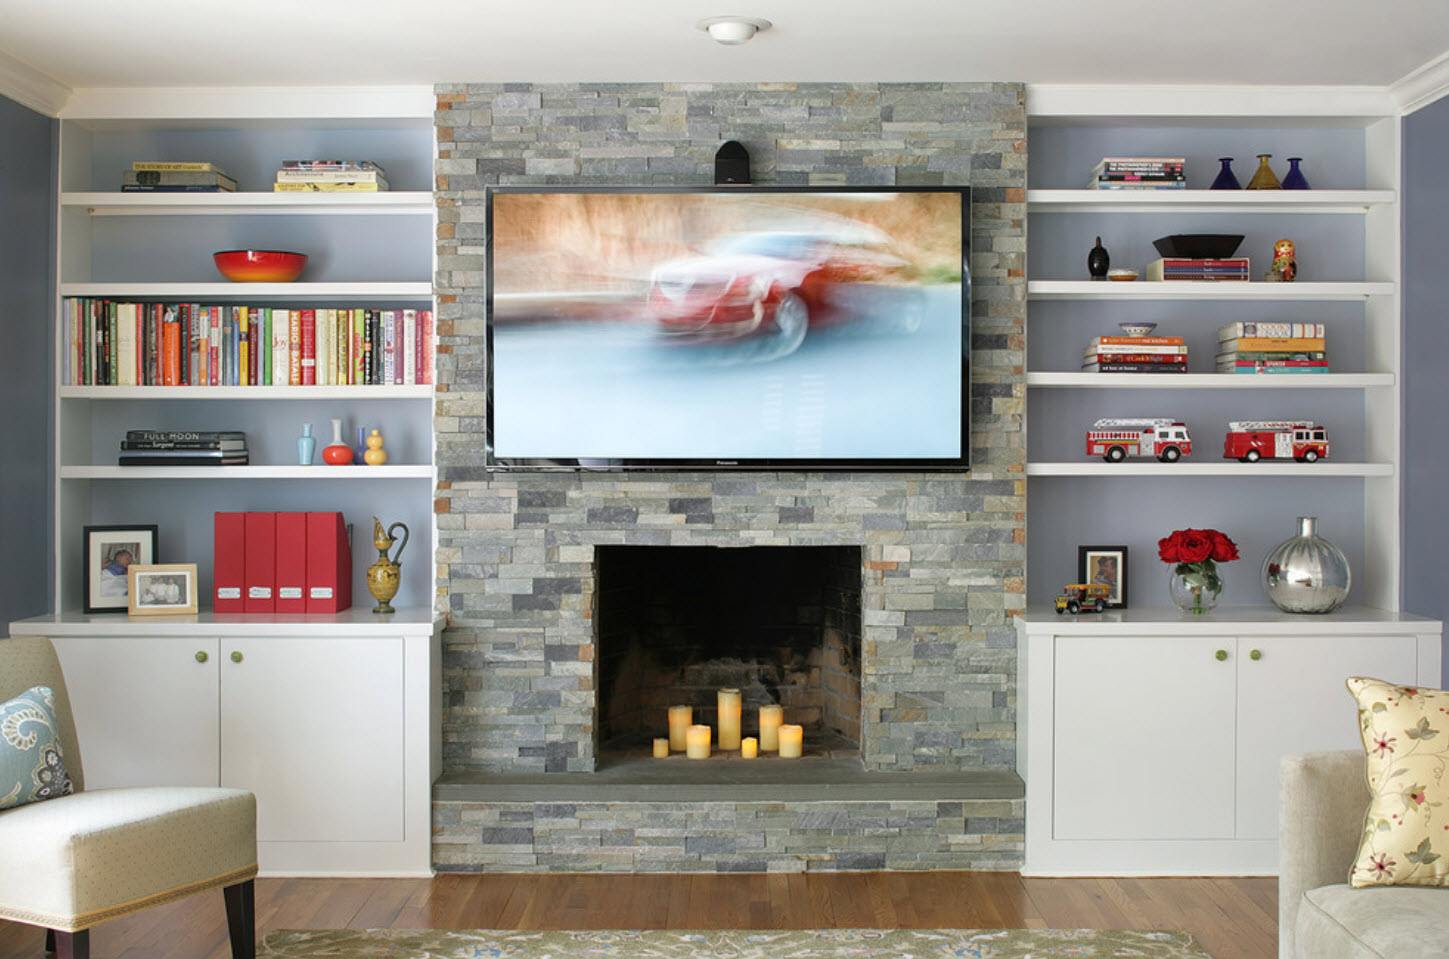 Aritificial stone trimmed accent wall with shelves on both sides